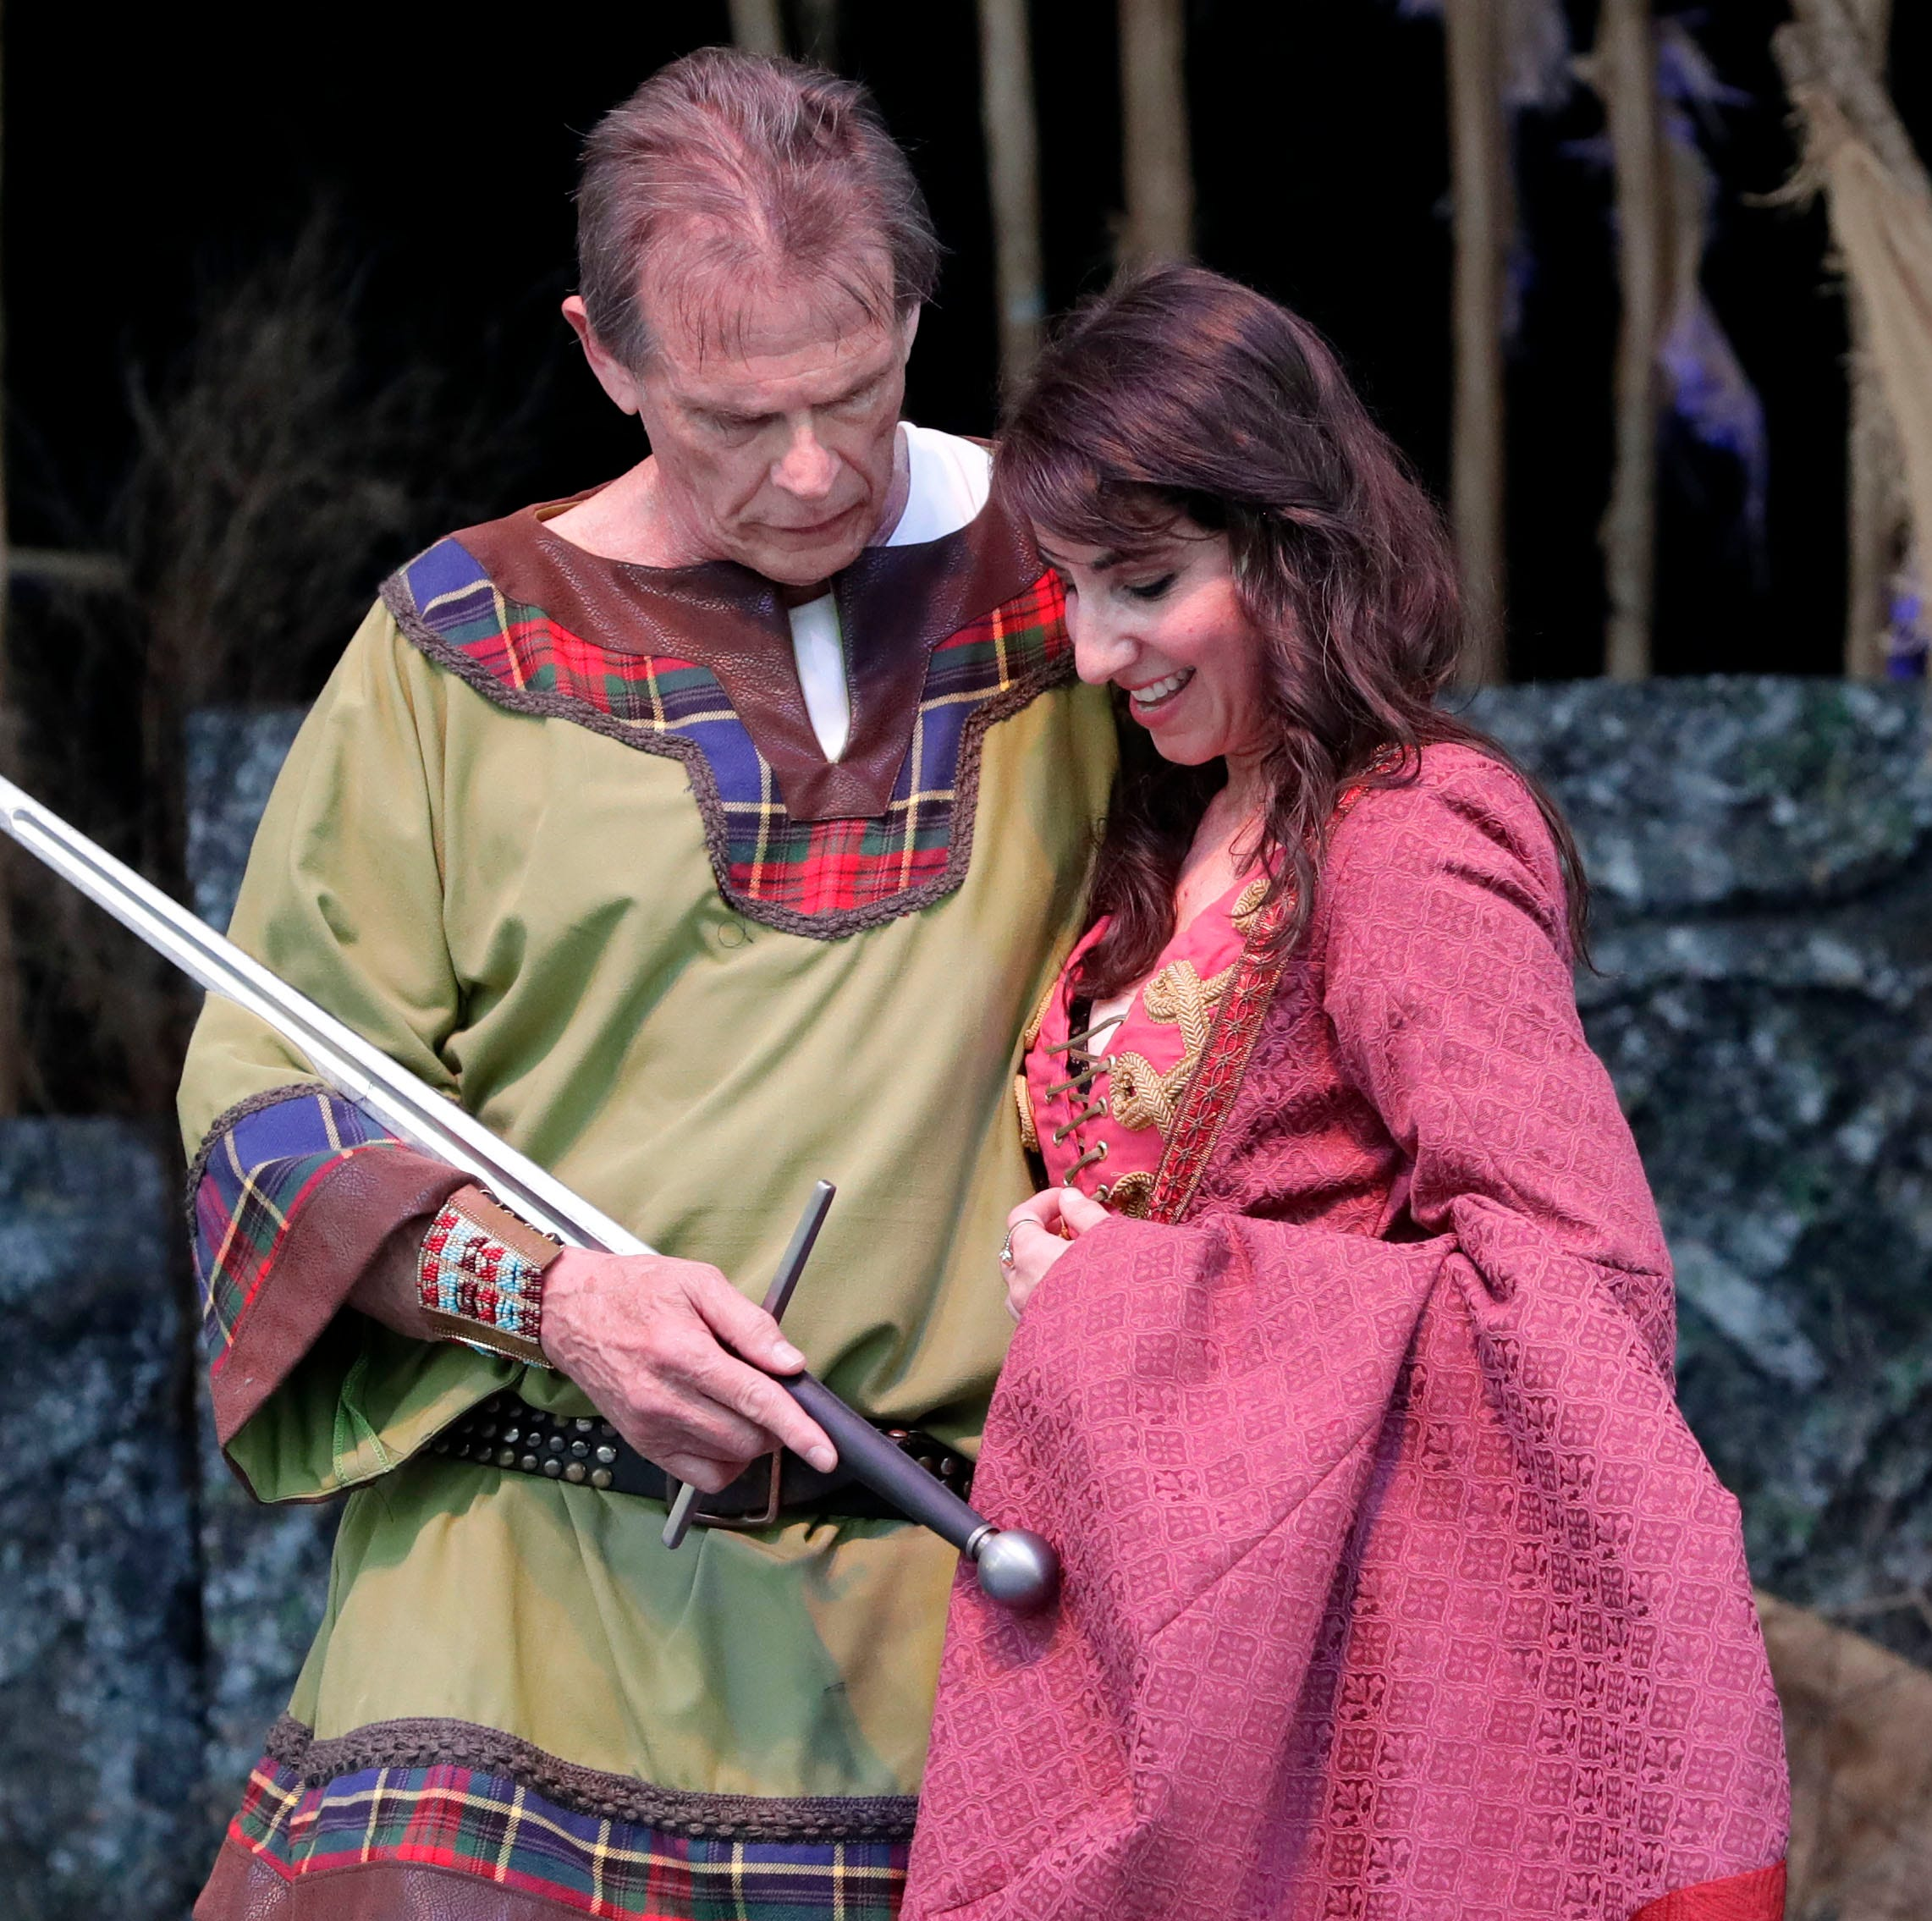 Toil and trouble, foul and fair, sound and fury all await Macbeth and his lady | Theater review